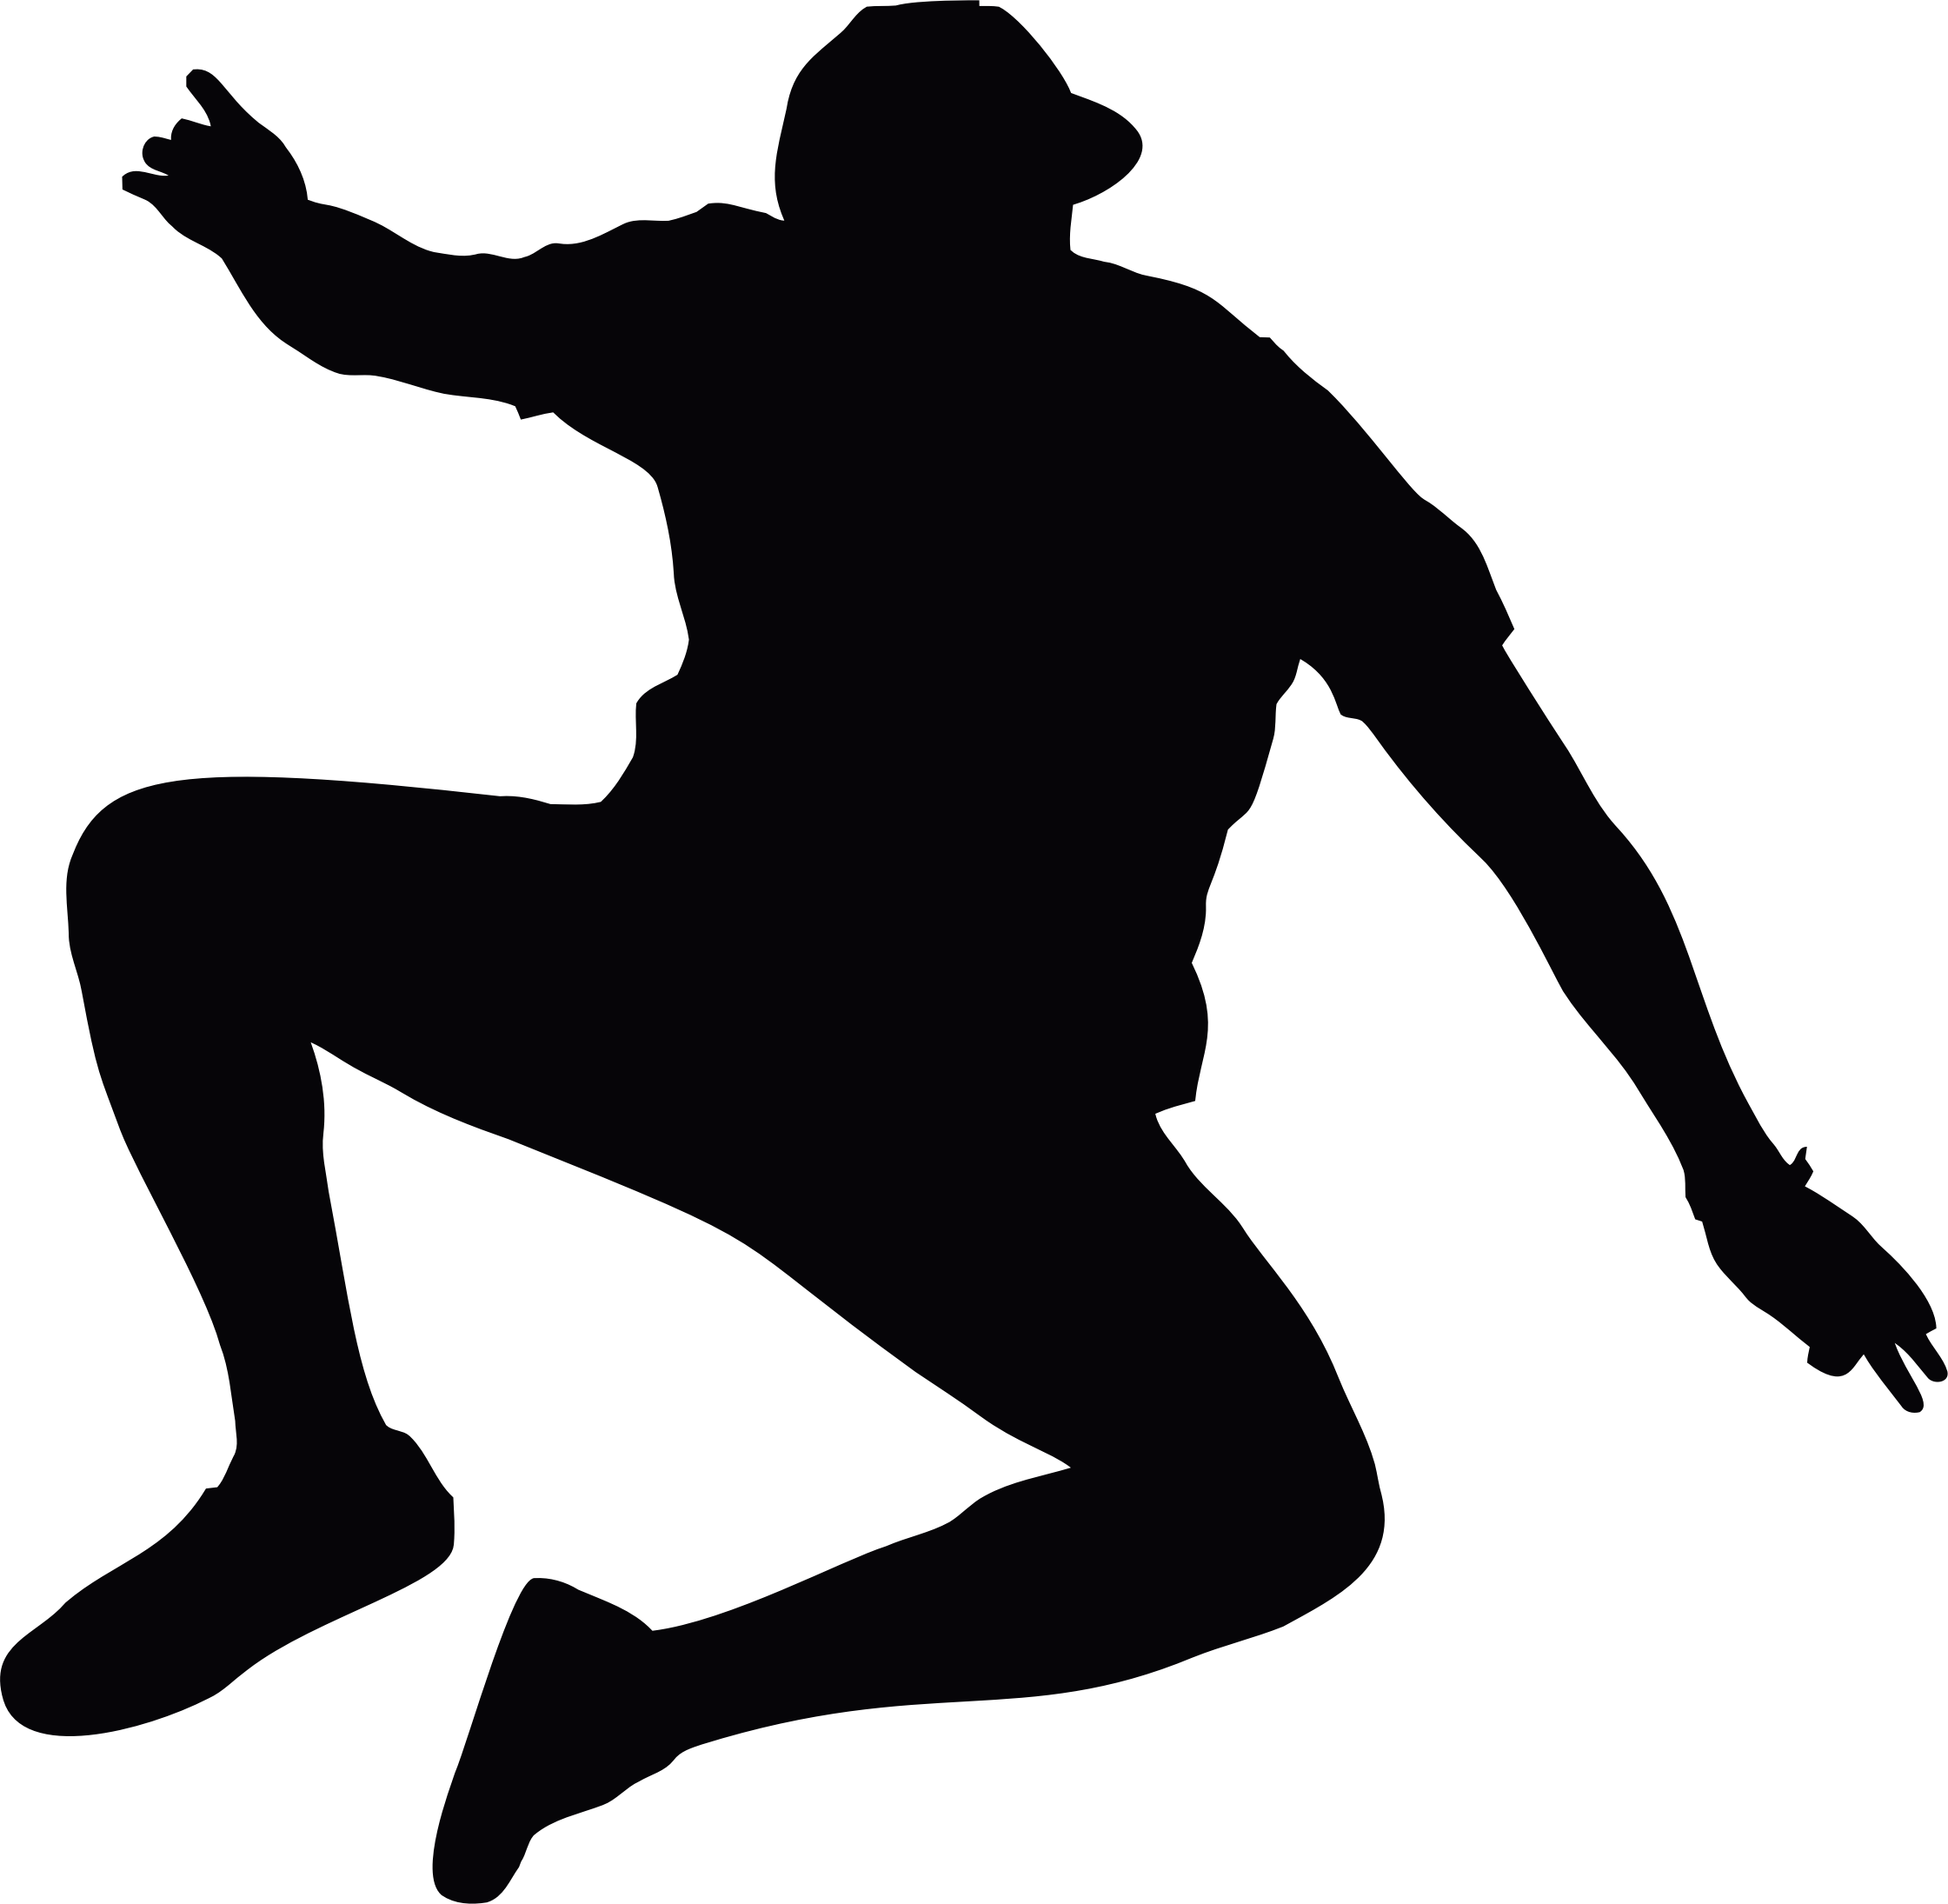 Cliff jump png. Jumping man silhouette icons